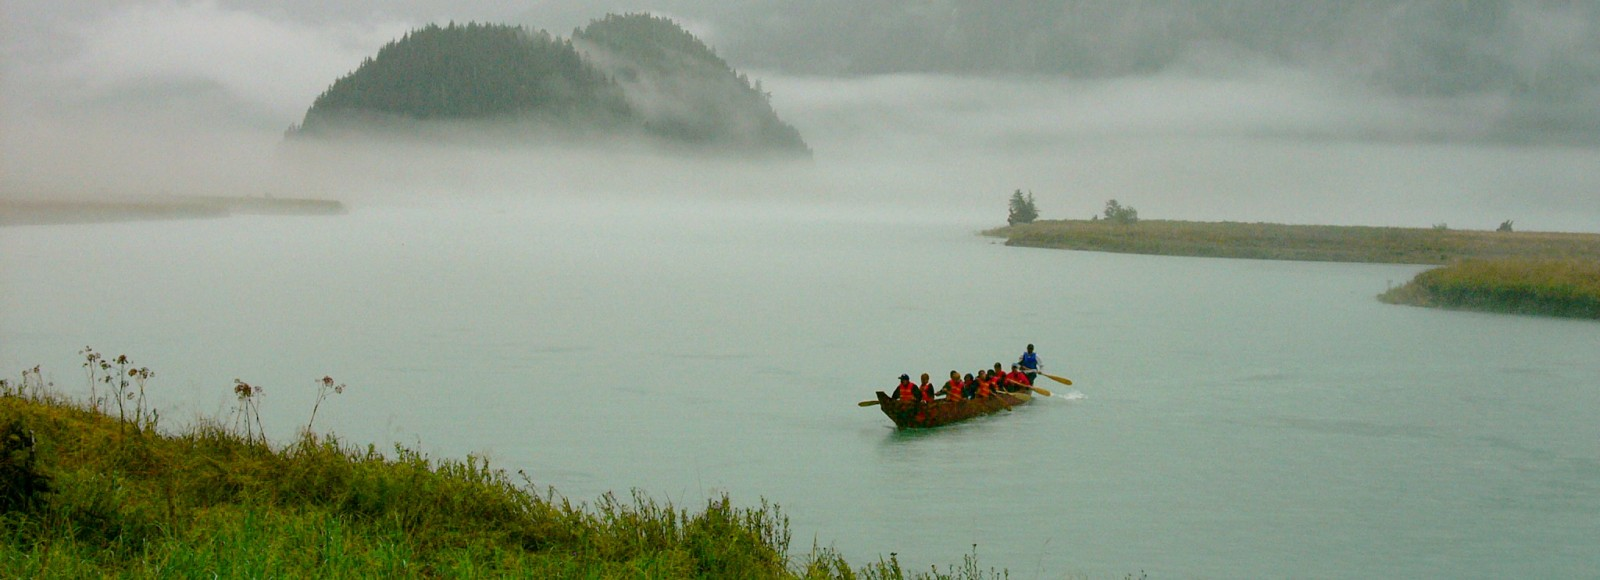 Canoe in the Kitlope in British Columbia